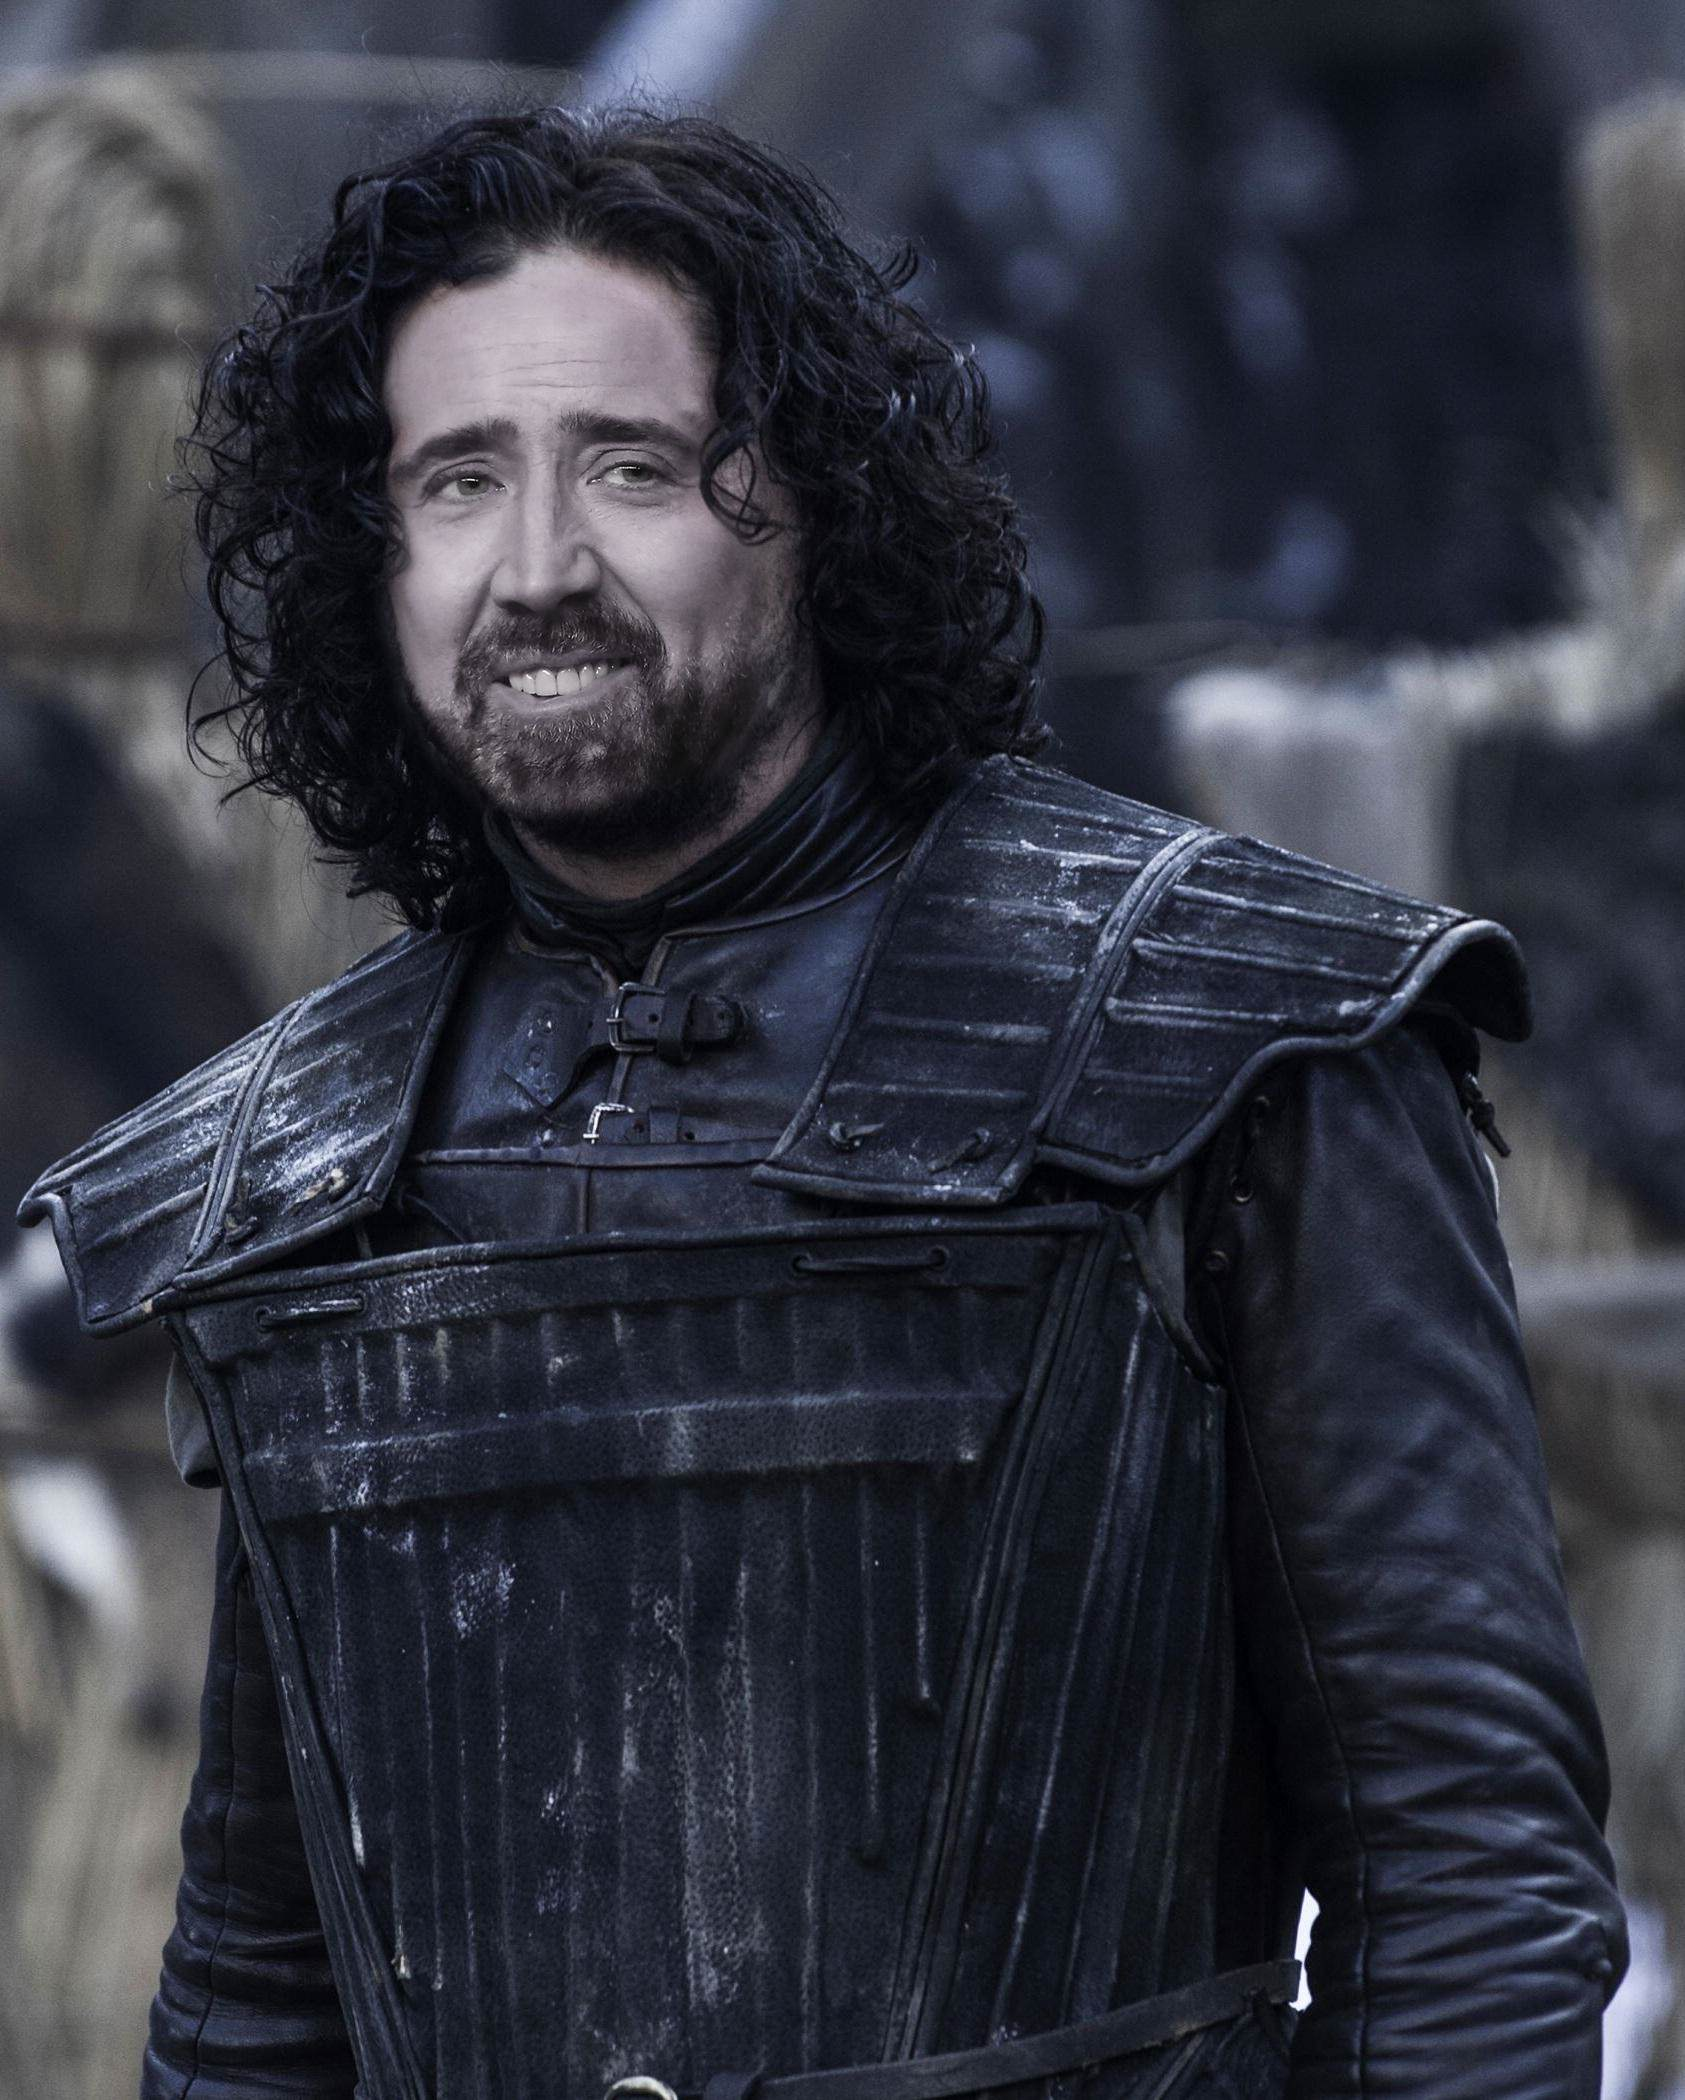 Nicolas Cage As Every Game Of Thrones Character Is Hilarious jon snow